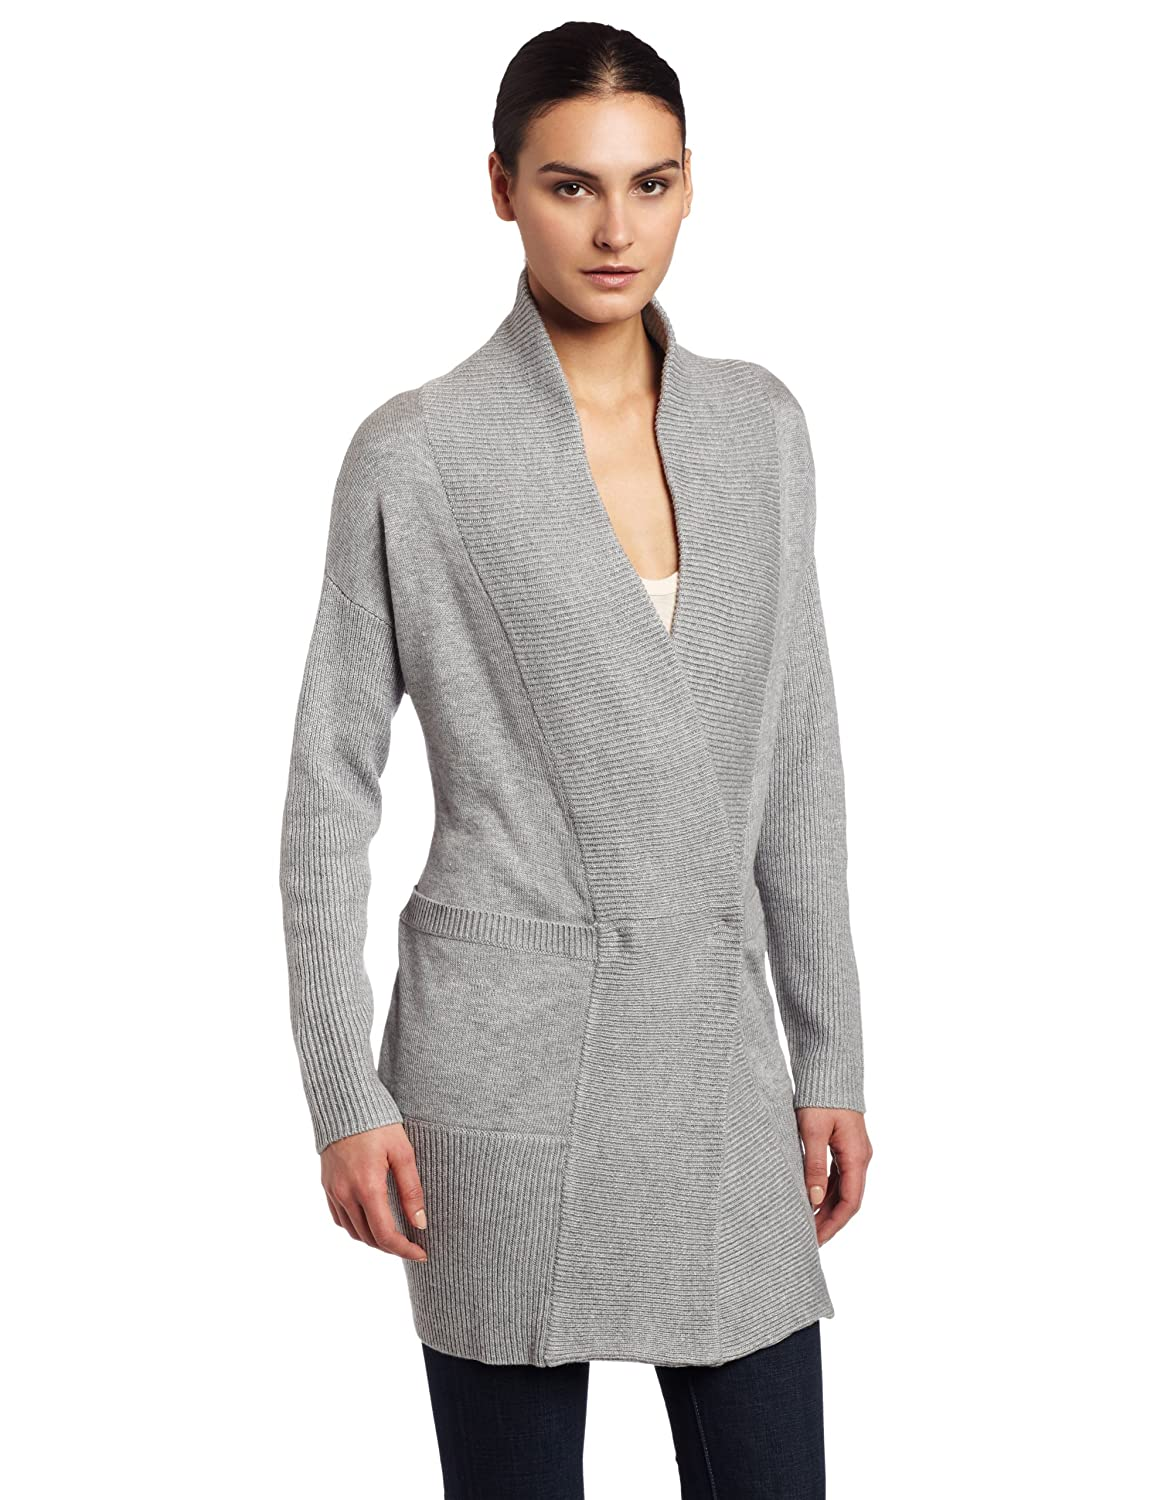 Kenneth Cole Women's Ribbed Trim Sweater Coat